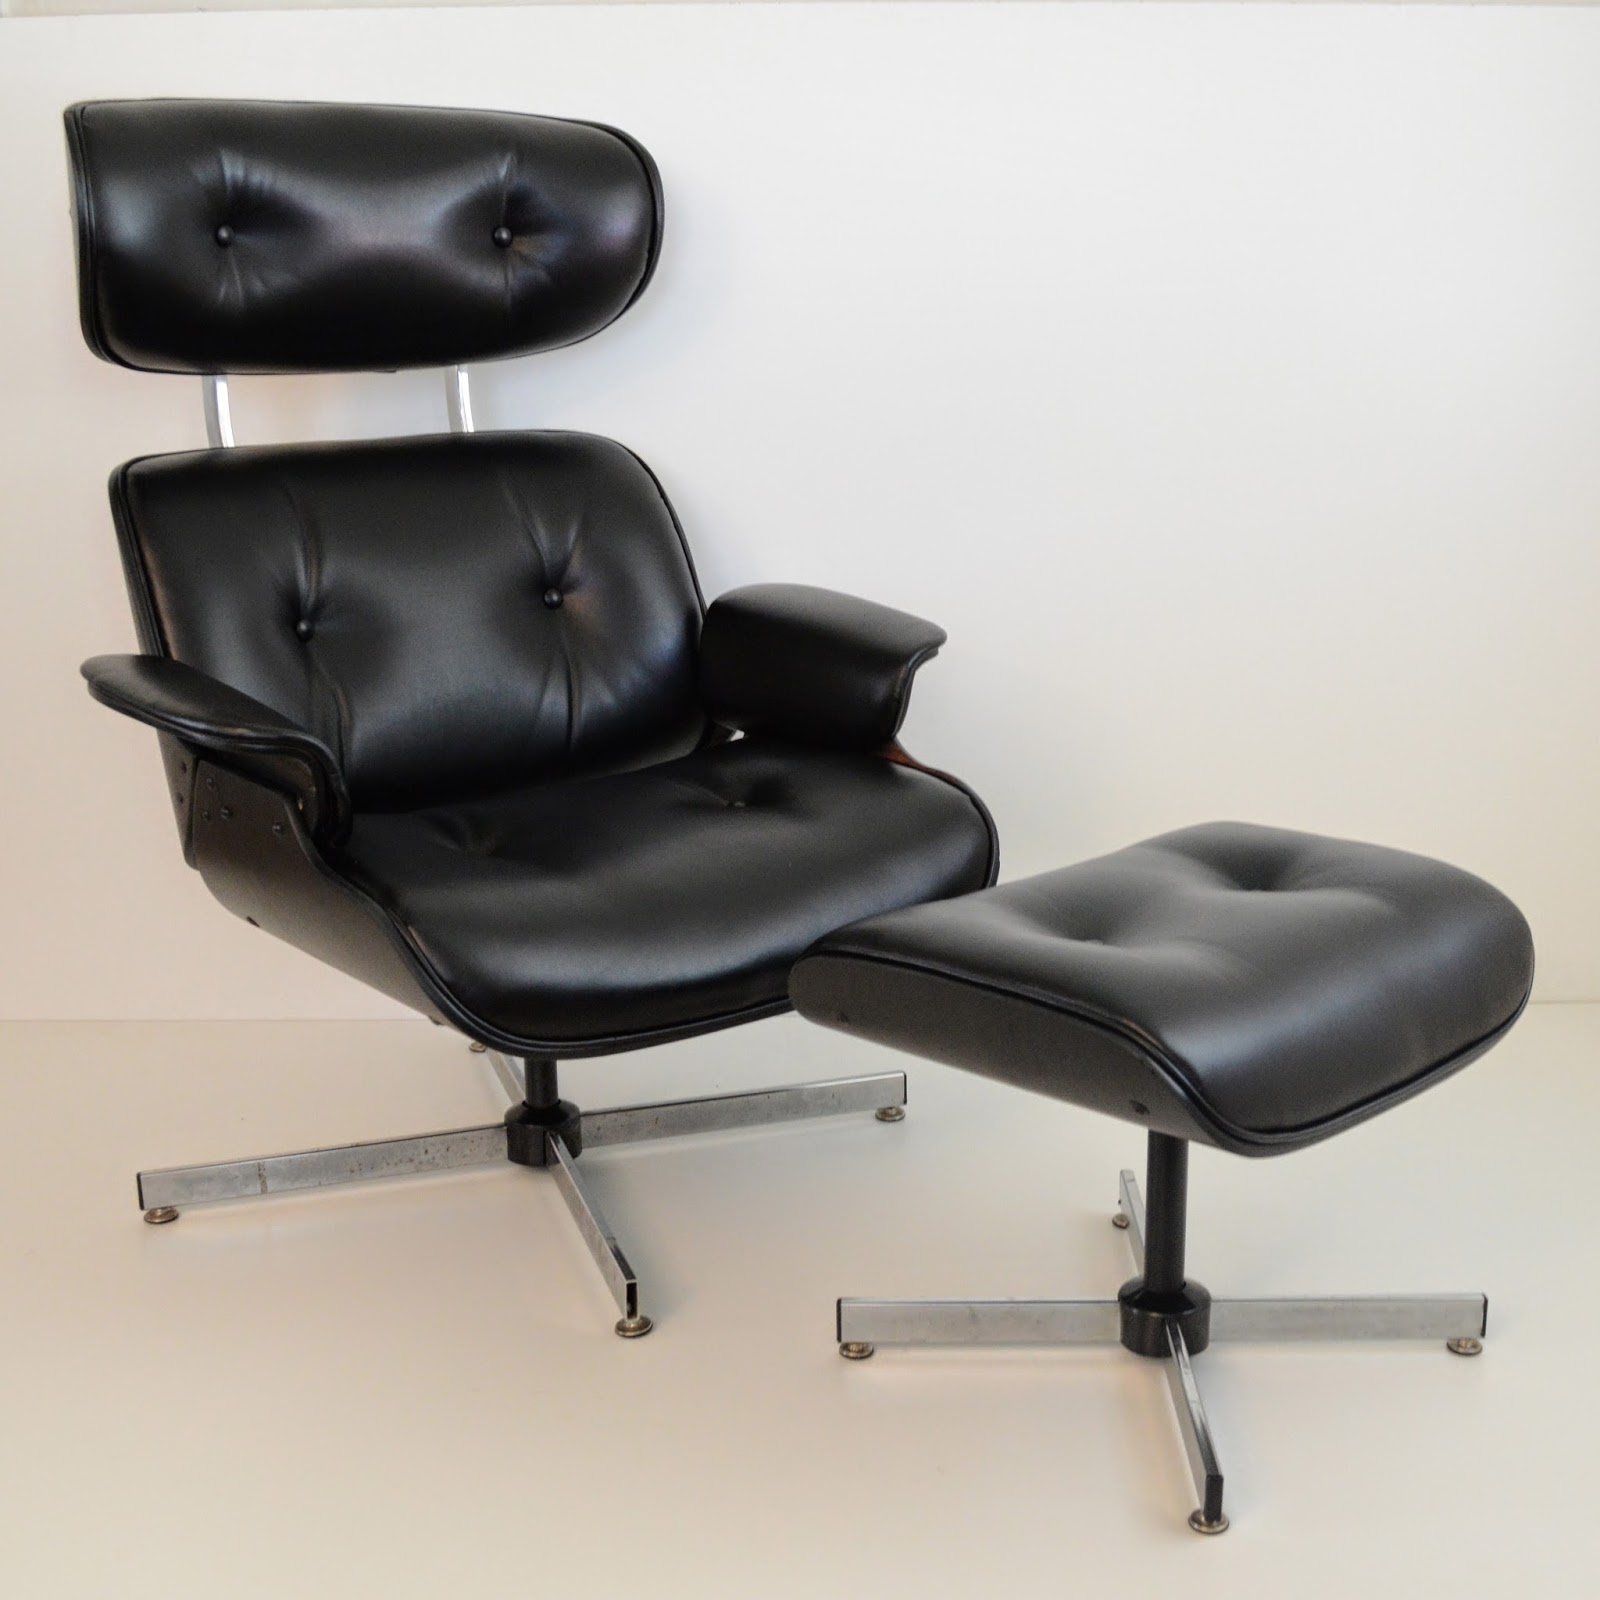 Remnant Eames Style Lounge Chair & Ottoman Black on Black